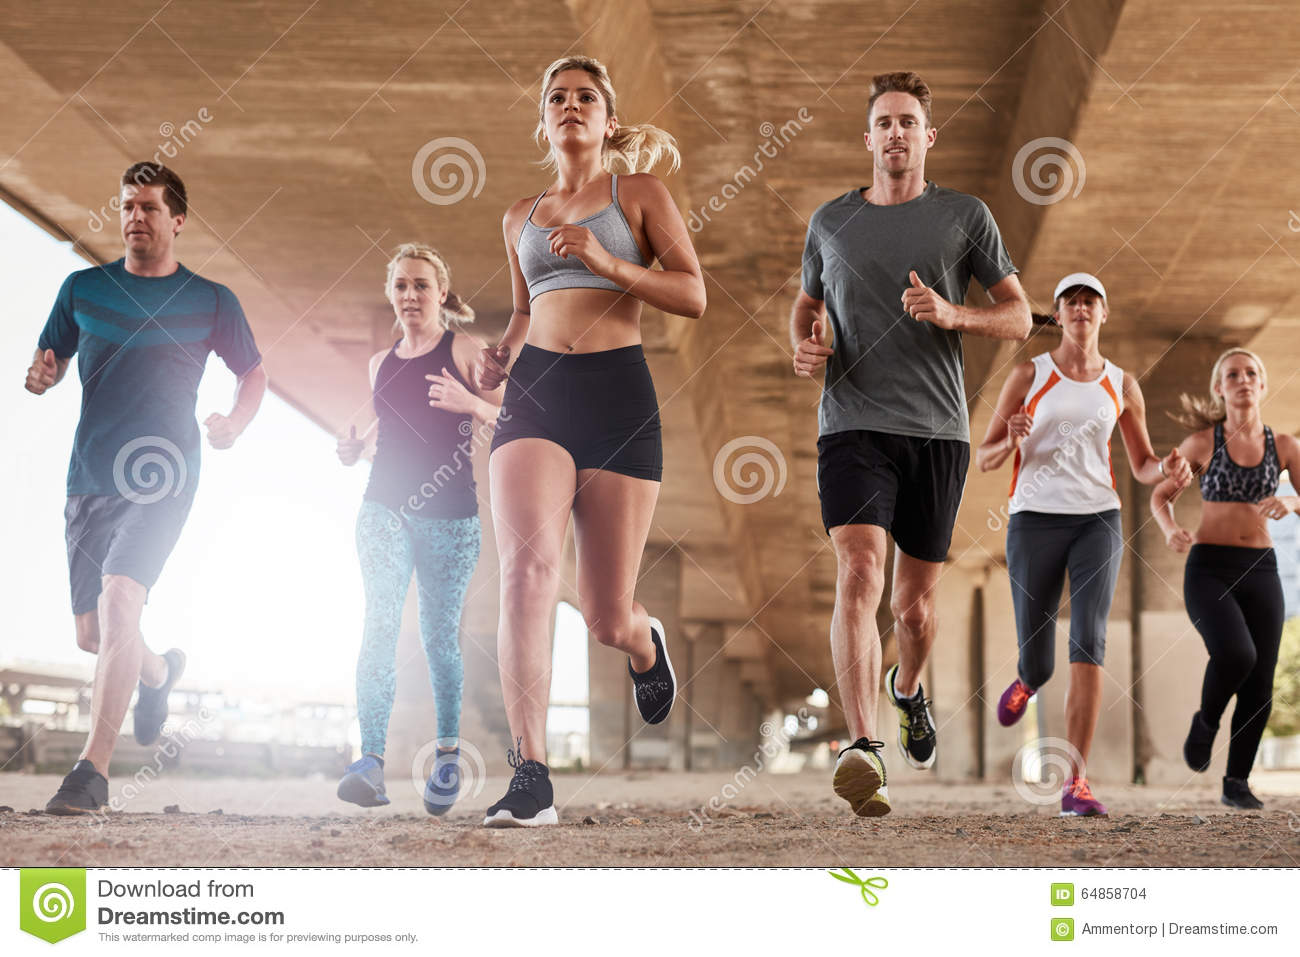 Determined group of young people running in city